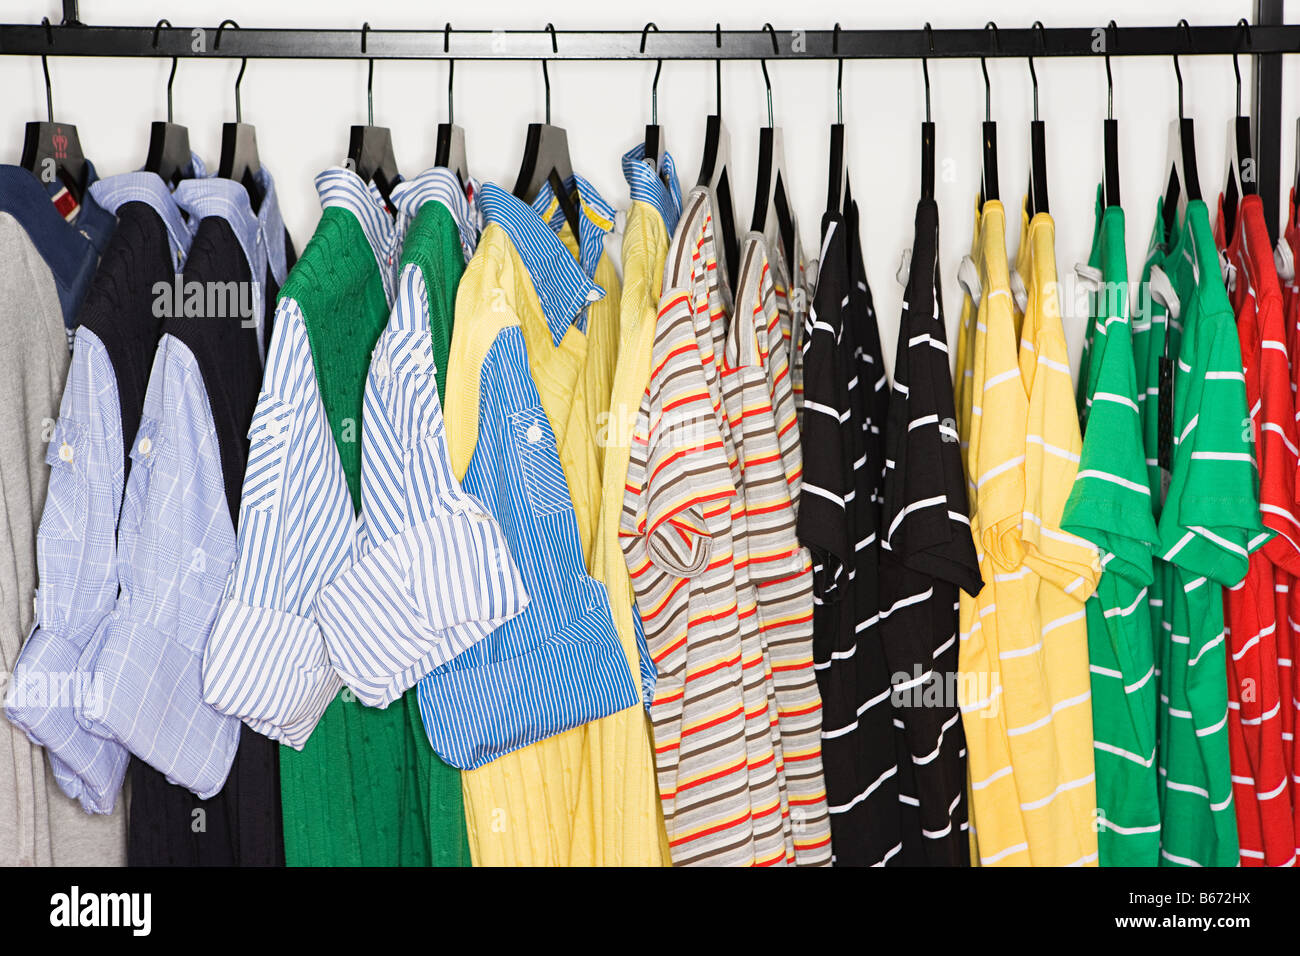 T-shirts on a clothes rail - Stock Image